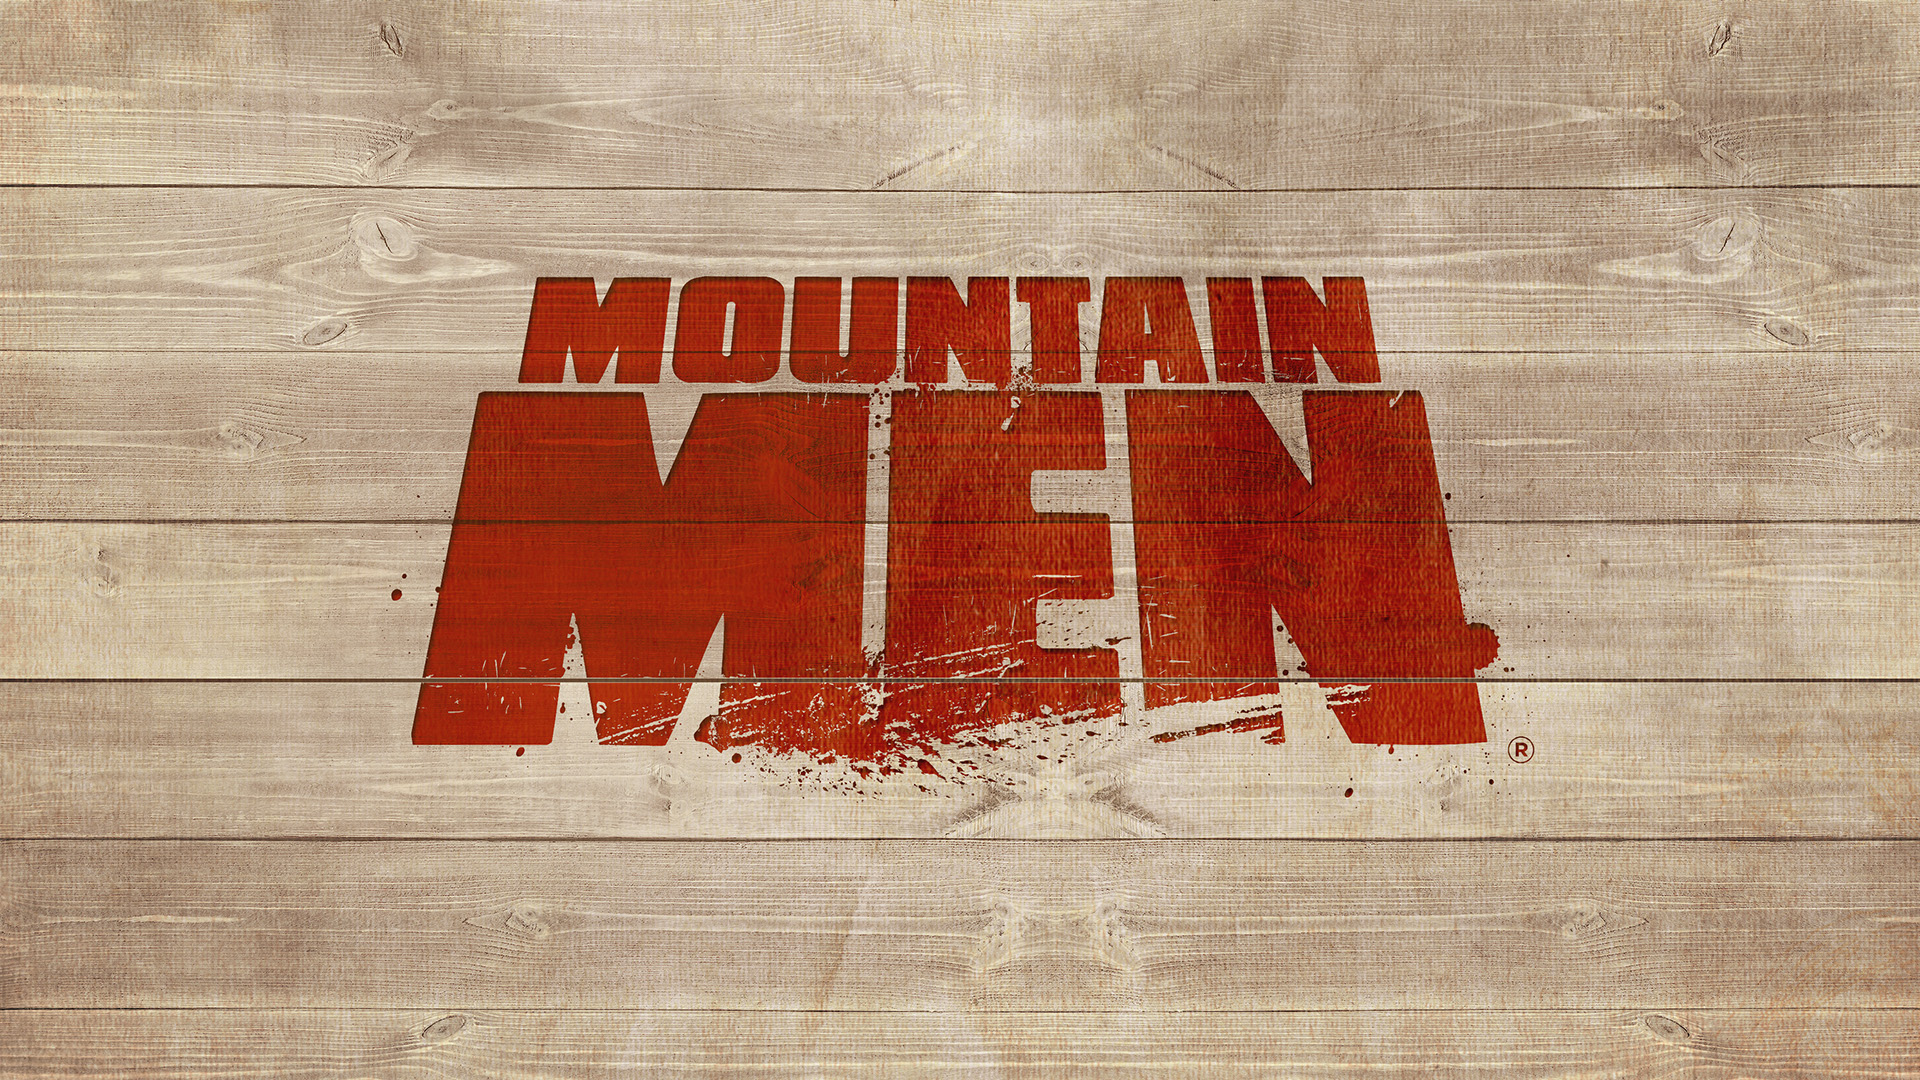 Mountain Men Full Episodes, Video & More | HISTORY